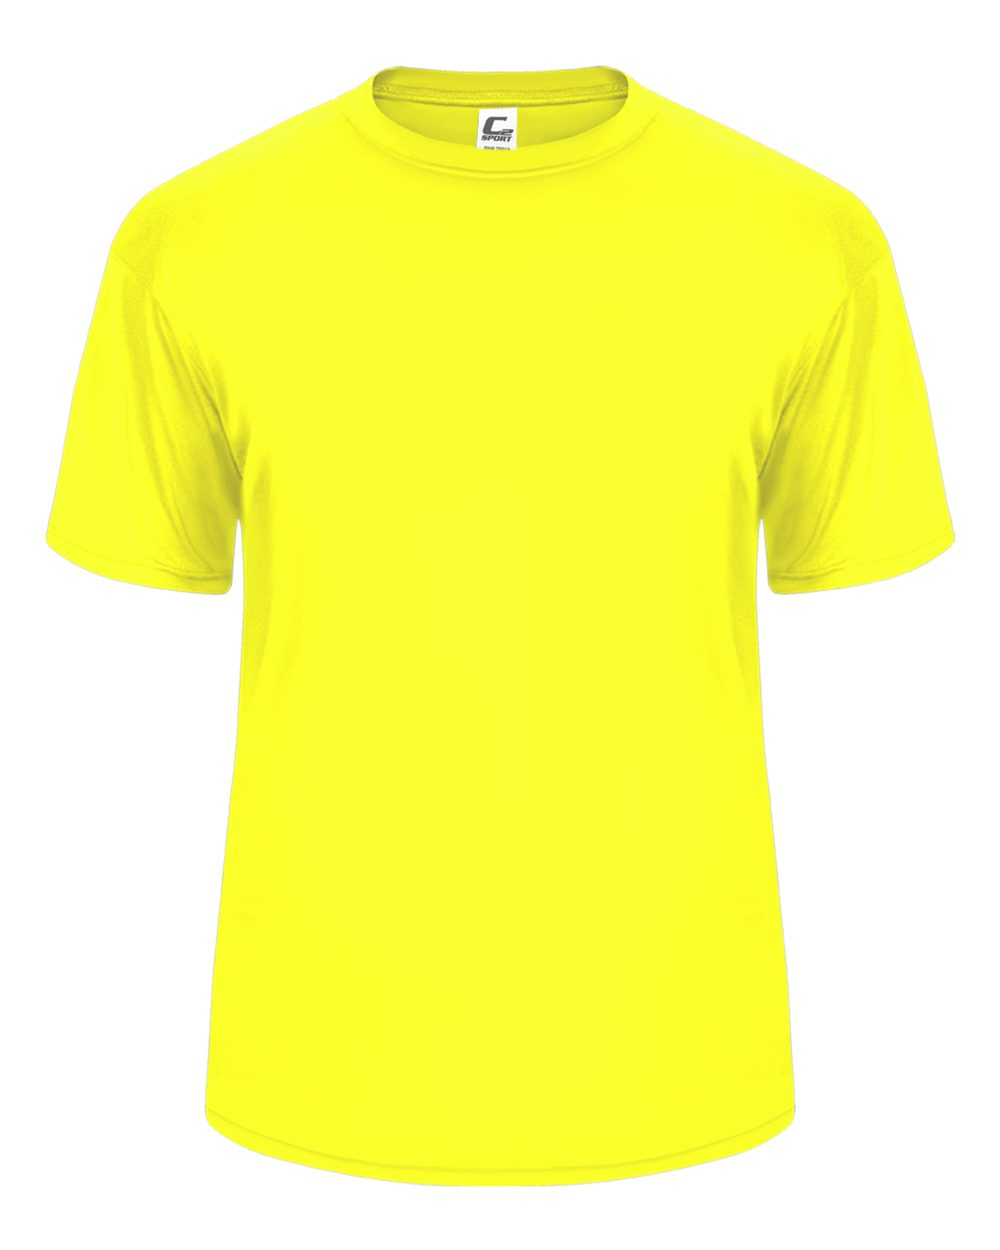 C2 Tee - Safety Yellow